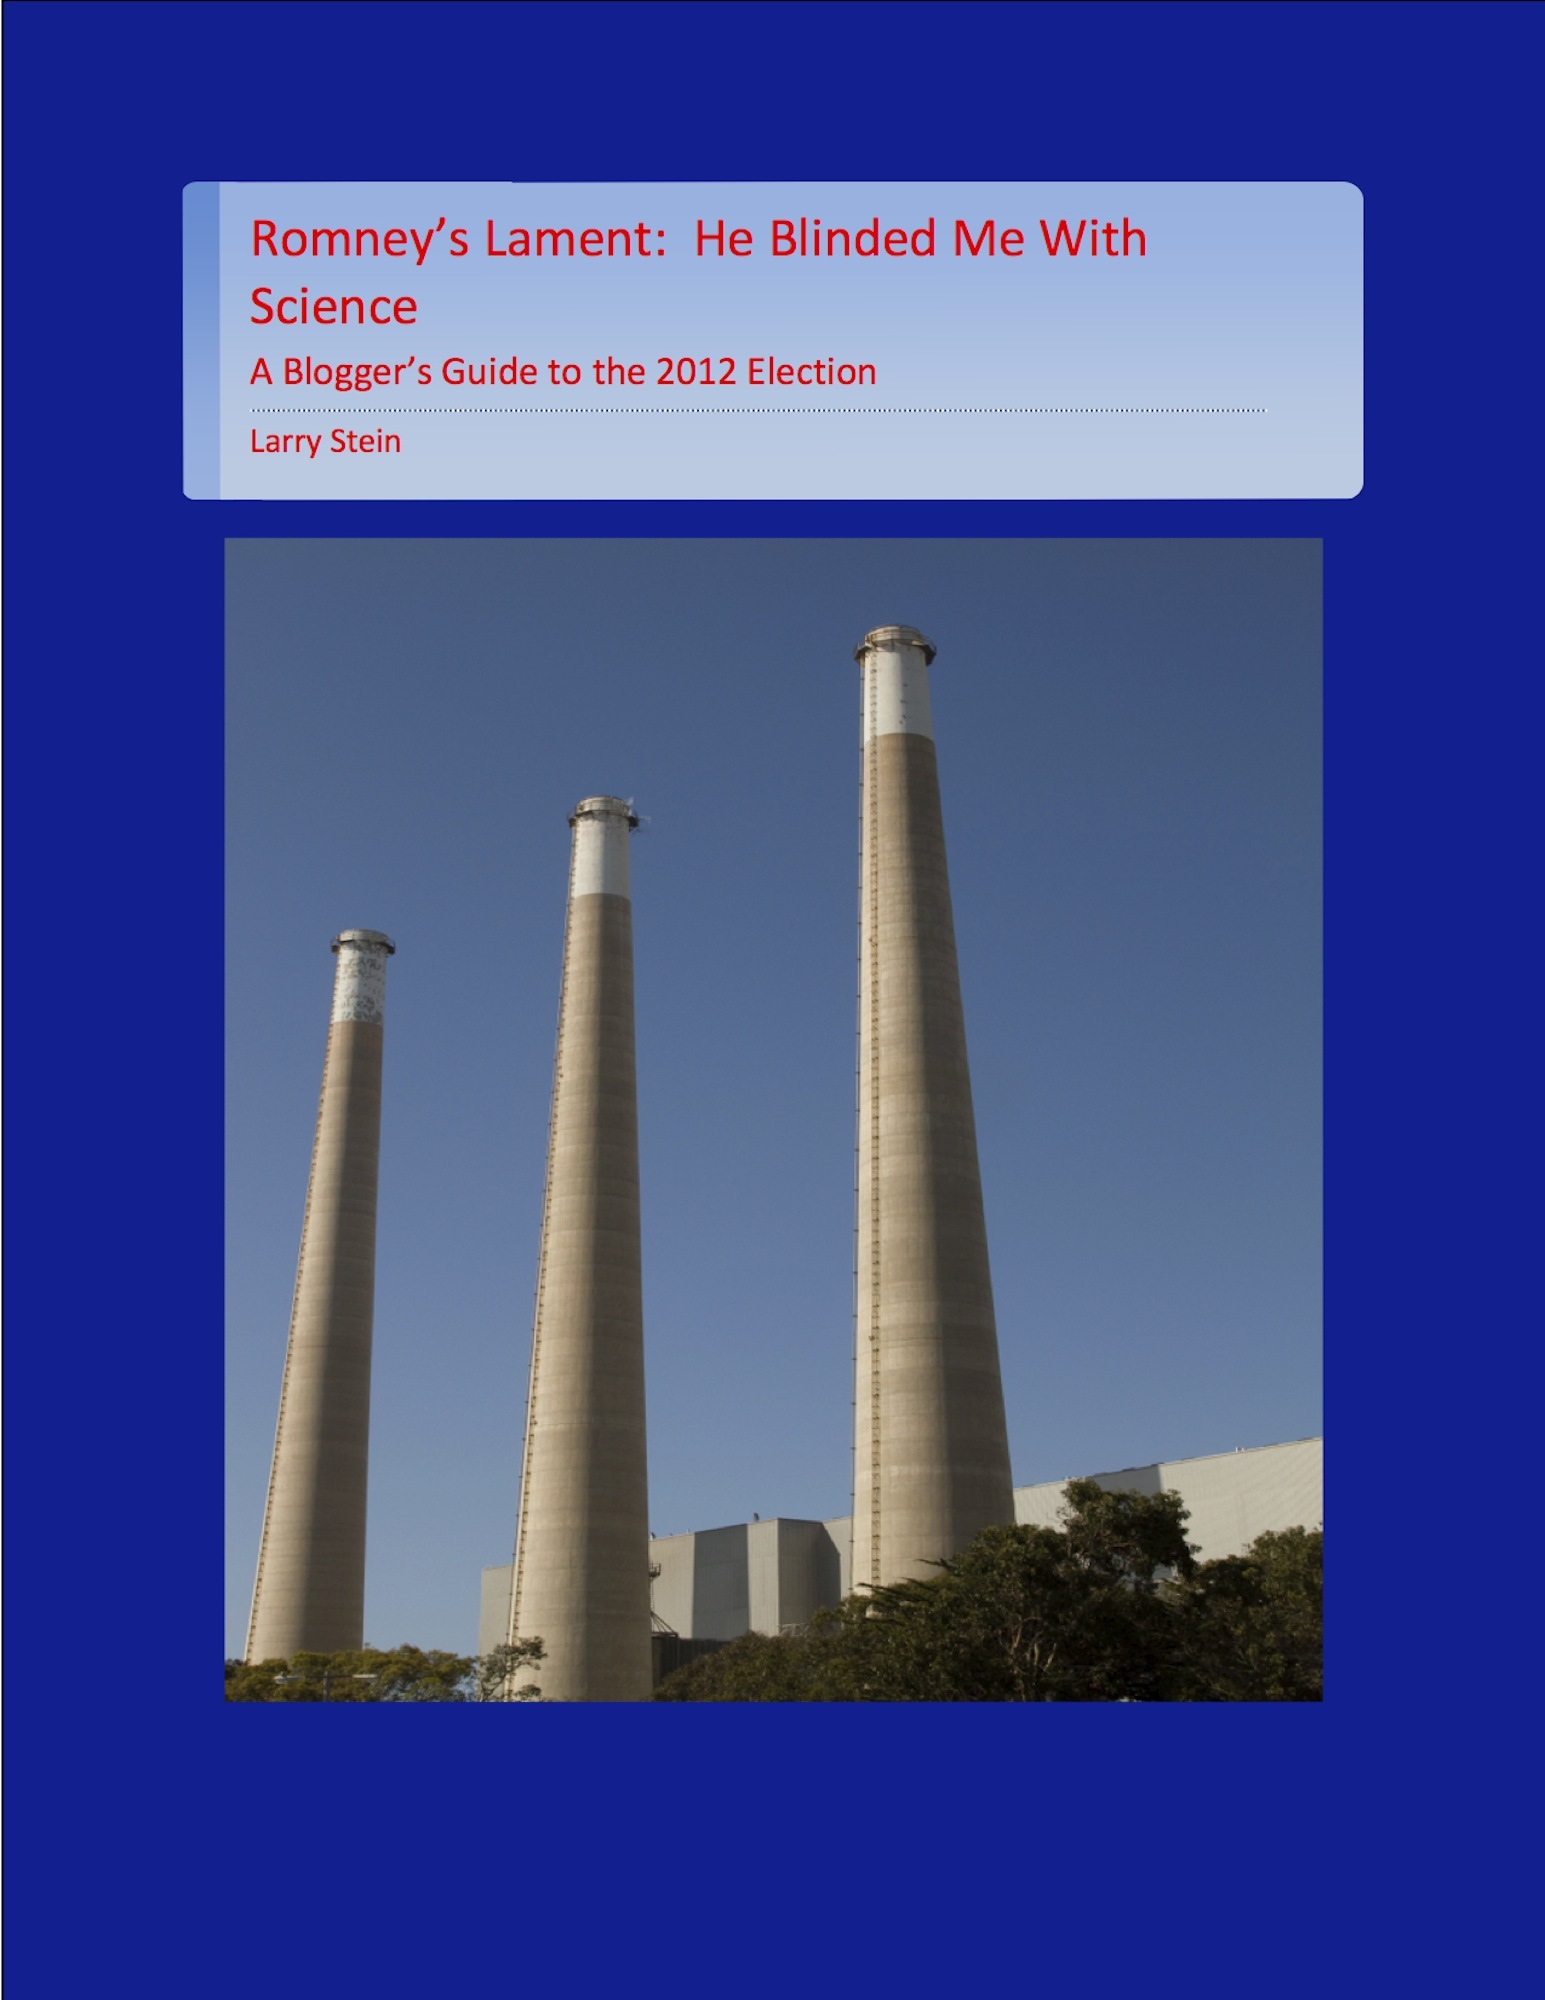 Romney's Lament:  He Blinded Me With Science